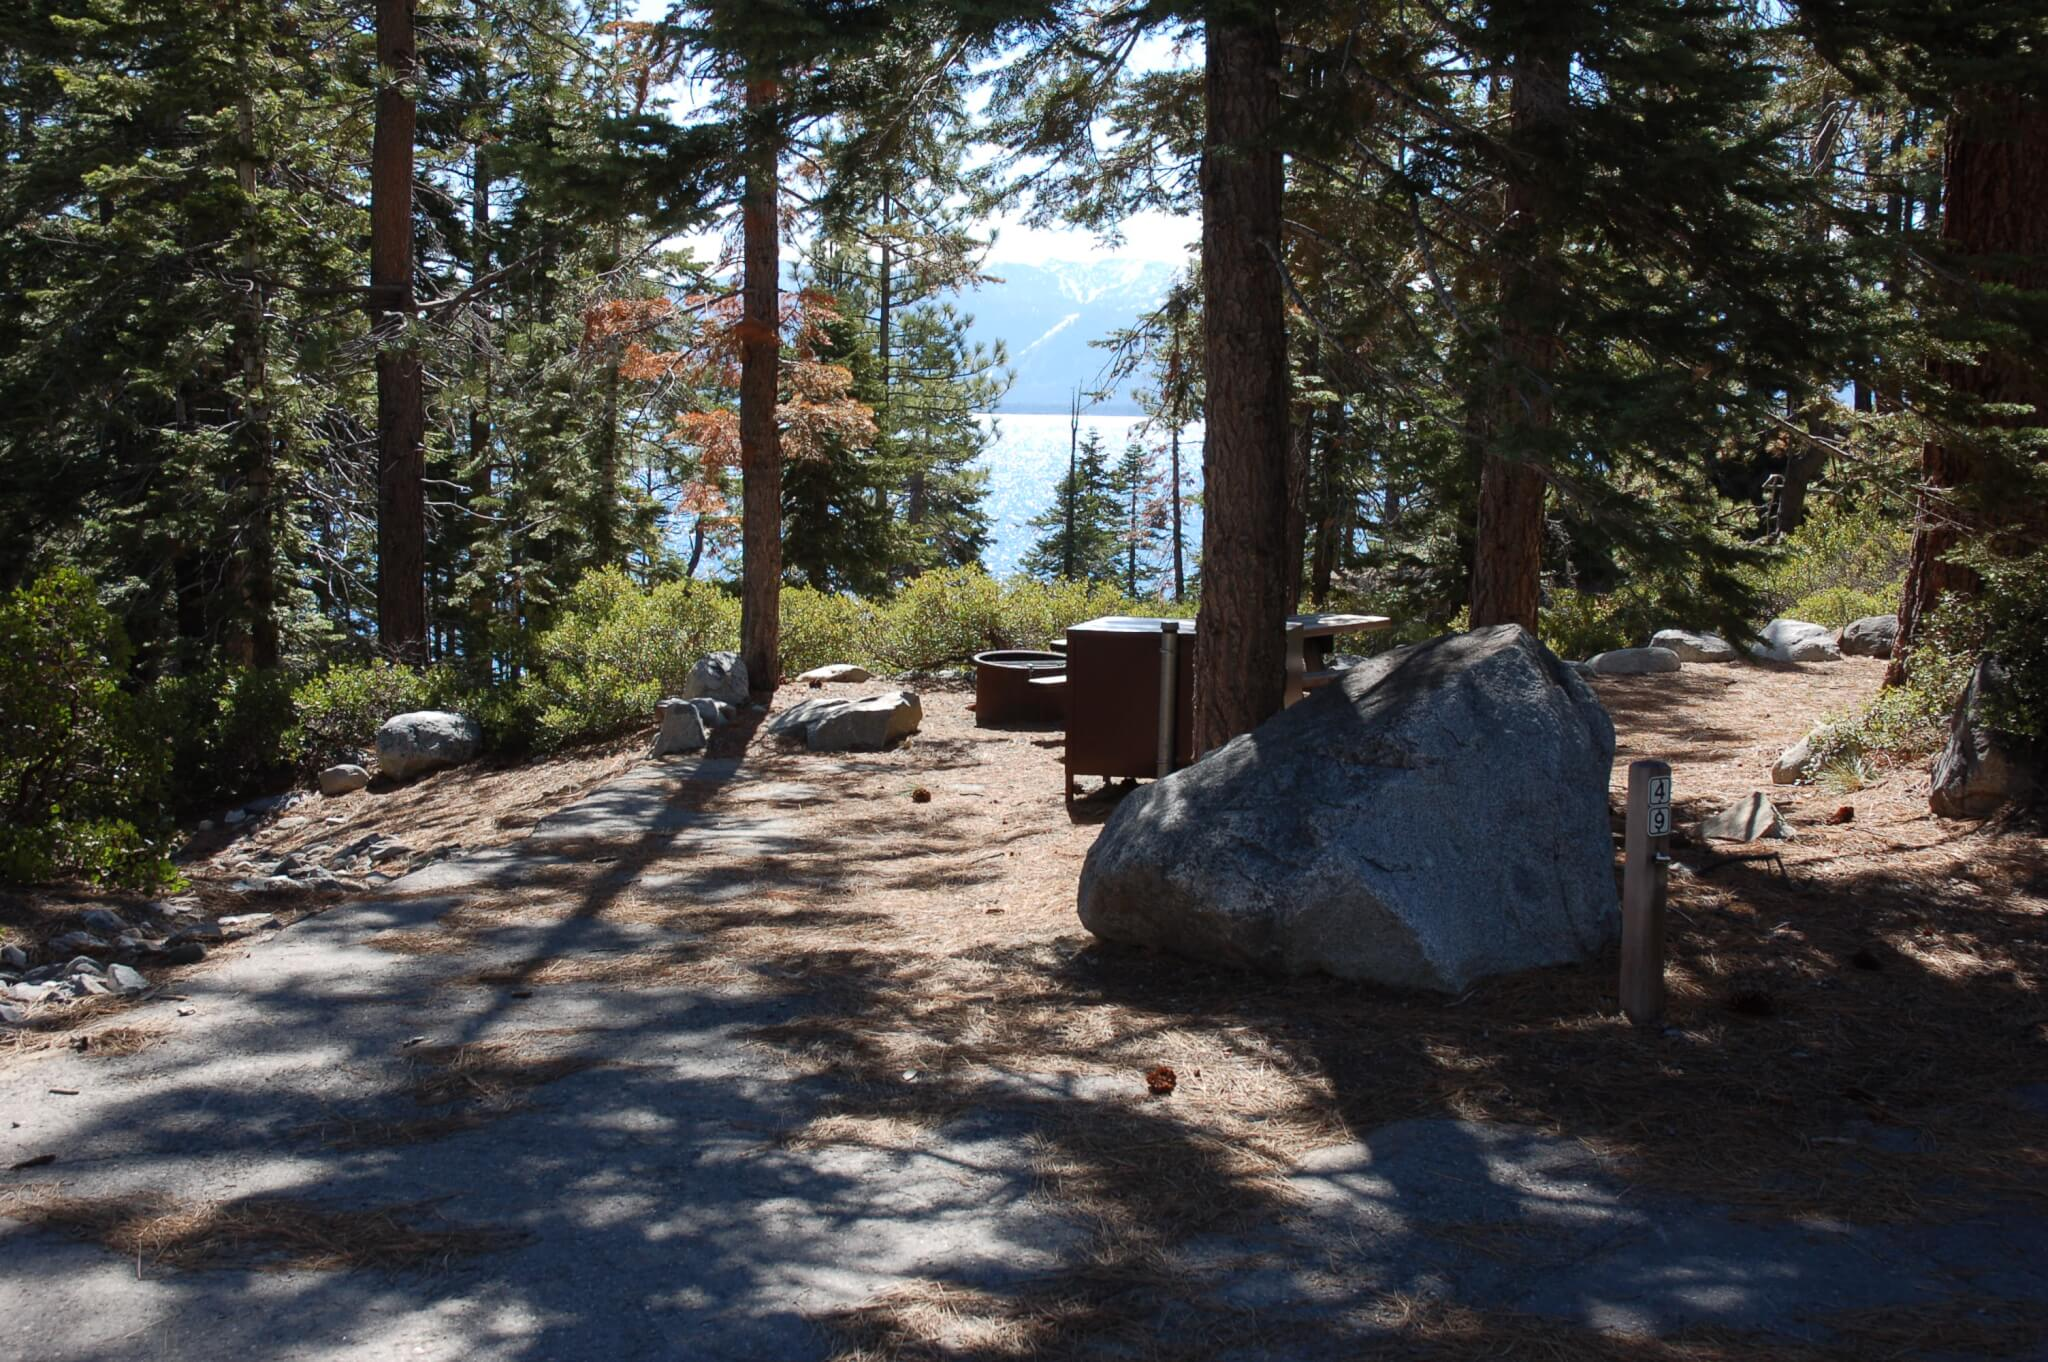 Best Campgrounds to Watch Lake Tahoe Fireworks